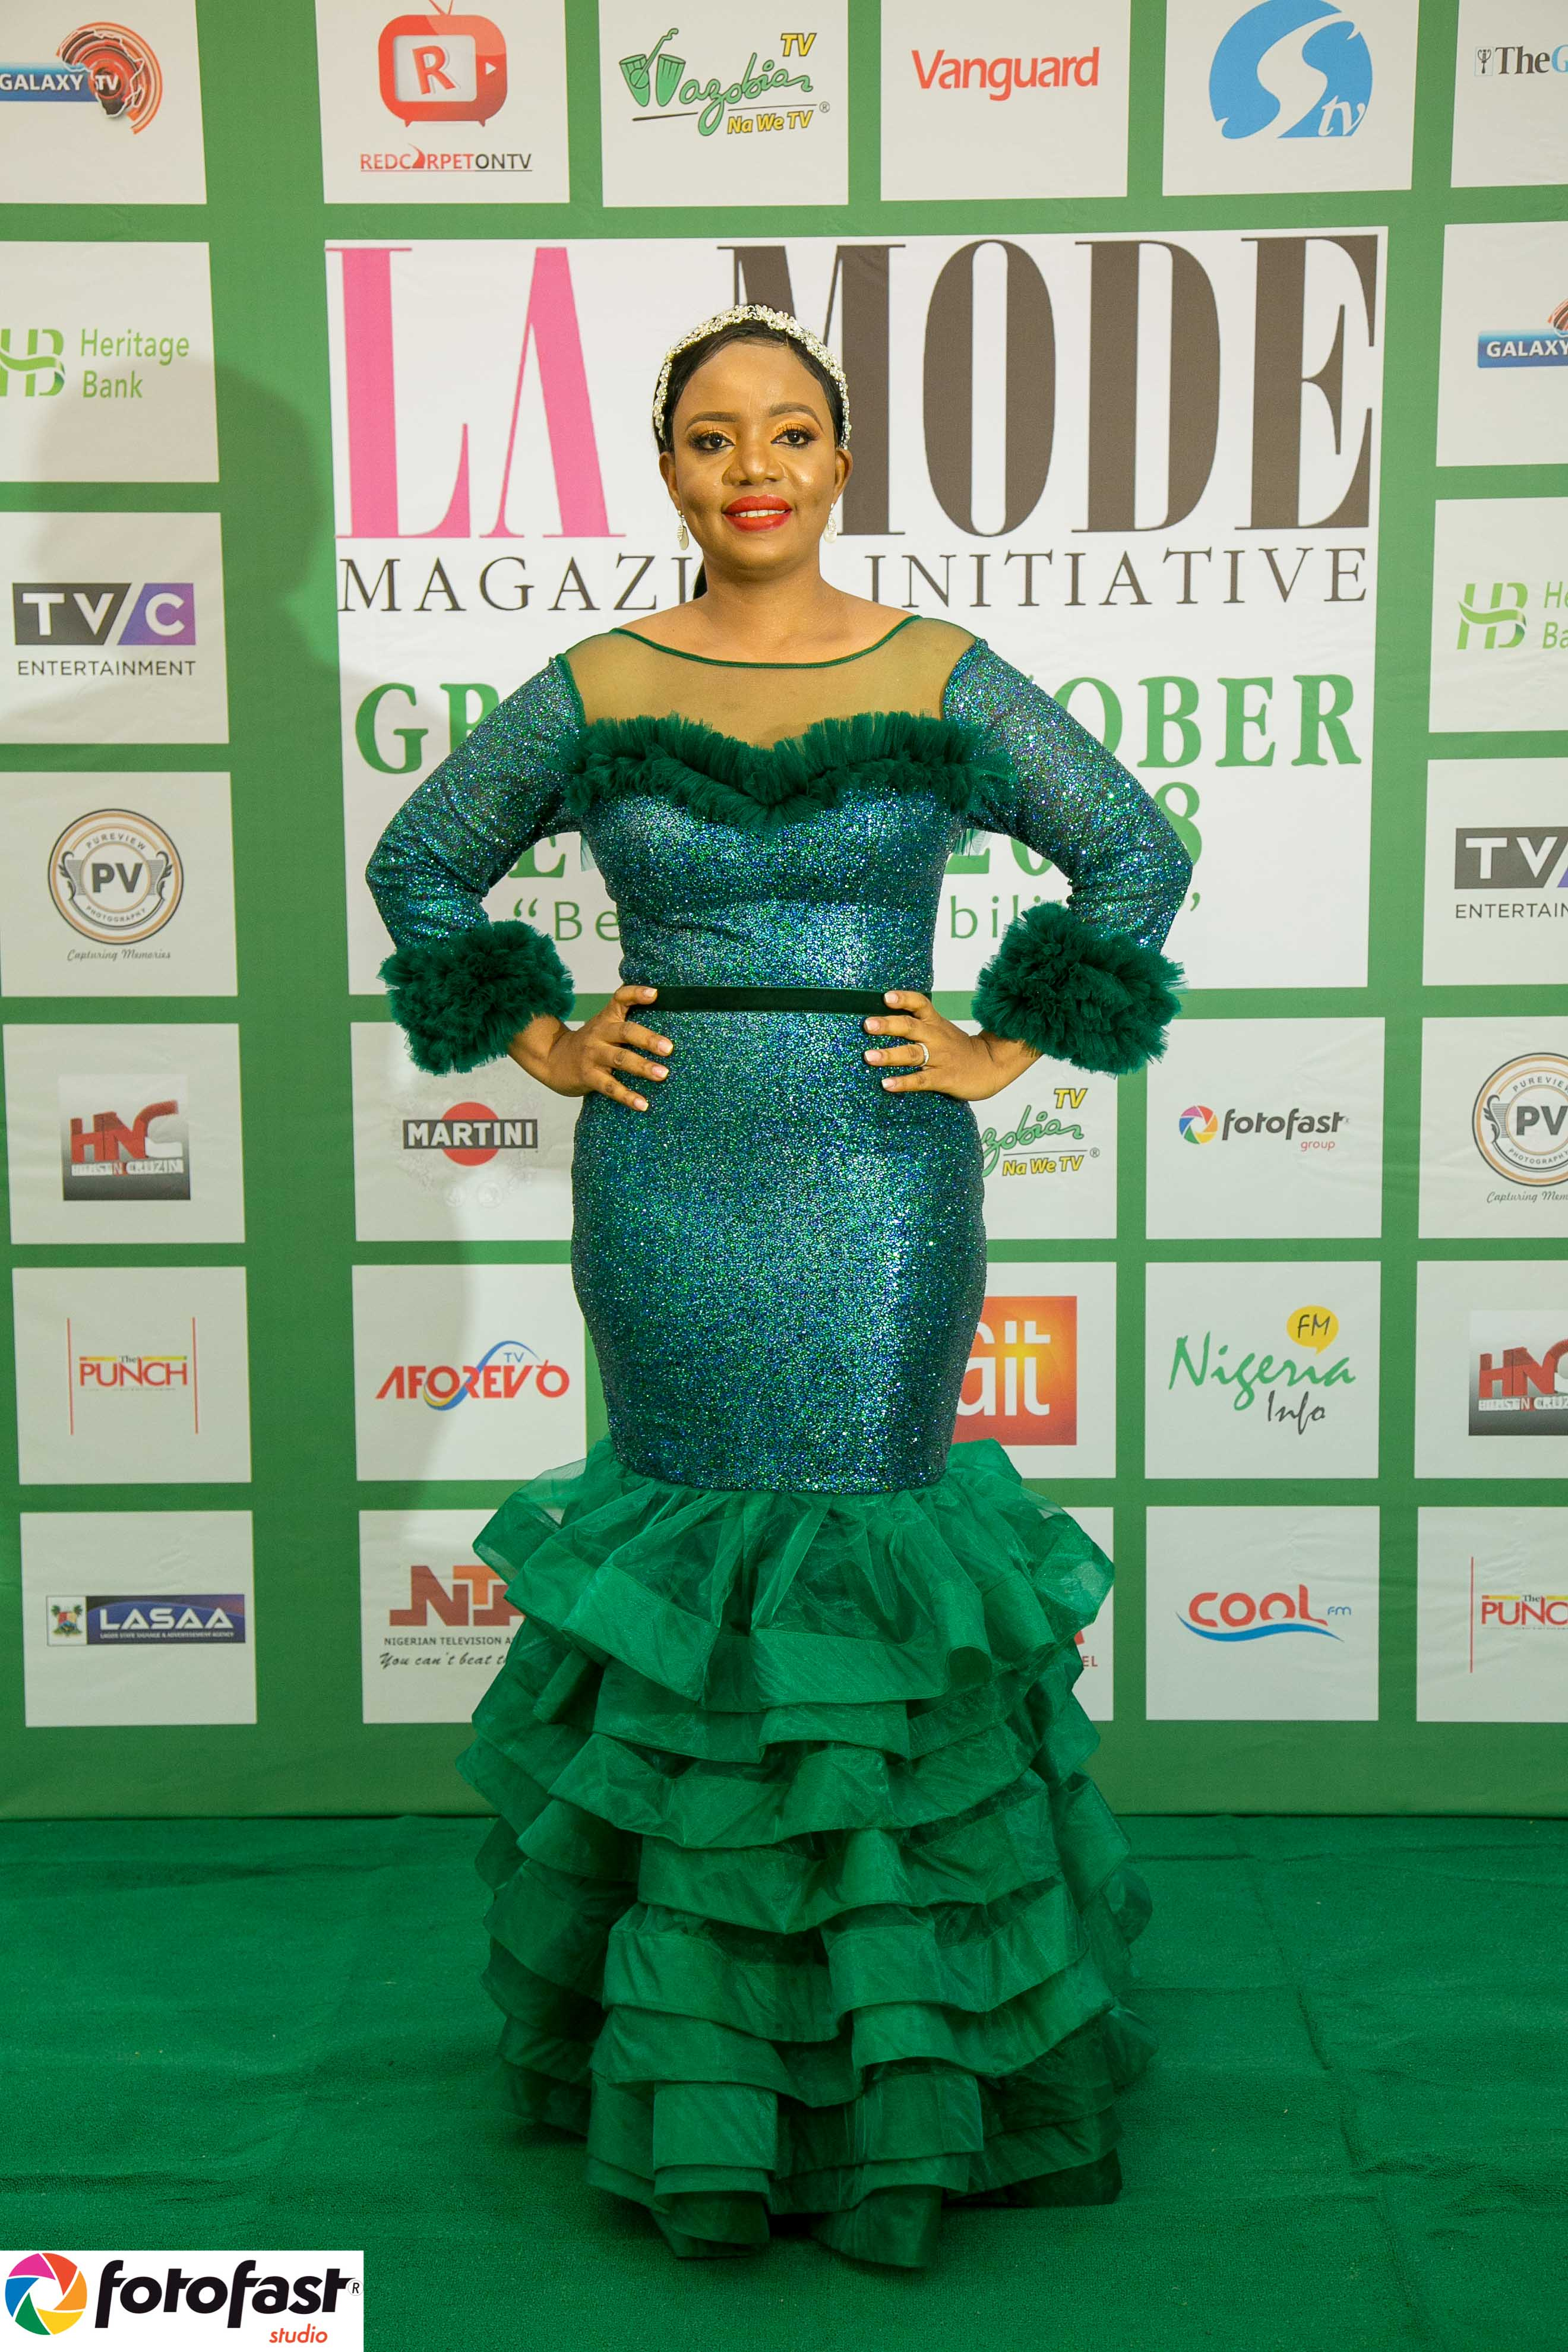 images CEO La Mode Magazine Mrs. Sandra Odige's Radiant Made By Trish .O. Couture's Outfit at the Green October Event 2019 Beyond Disabilities modern collection